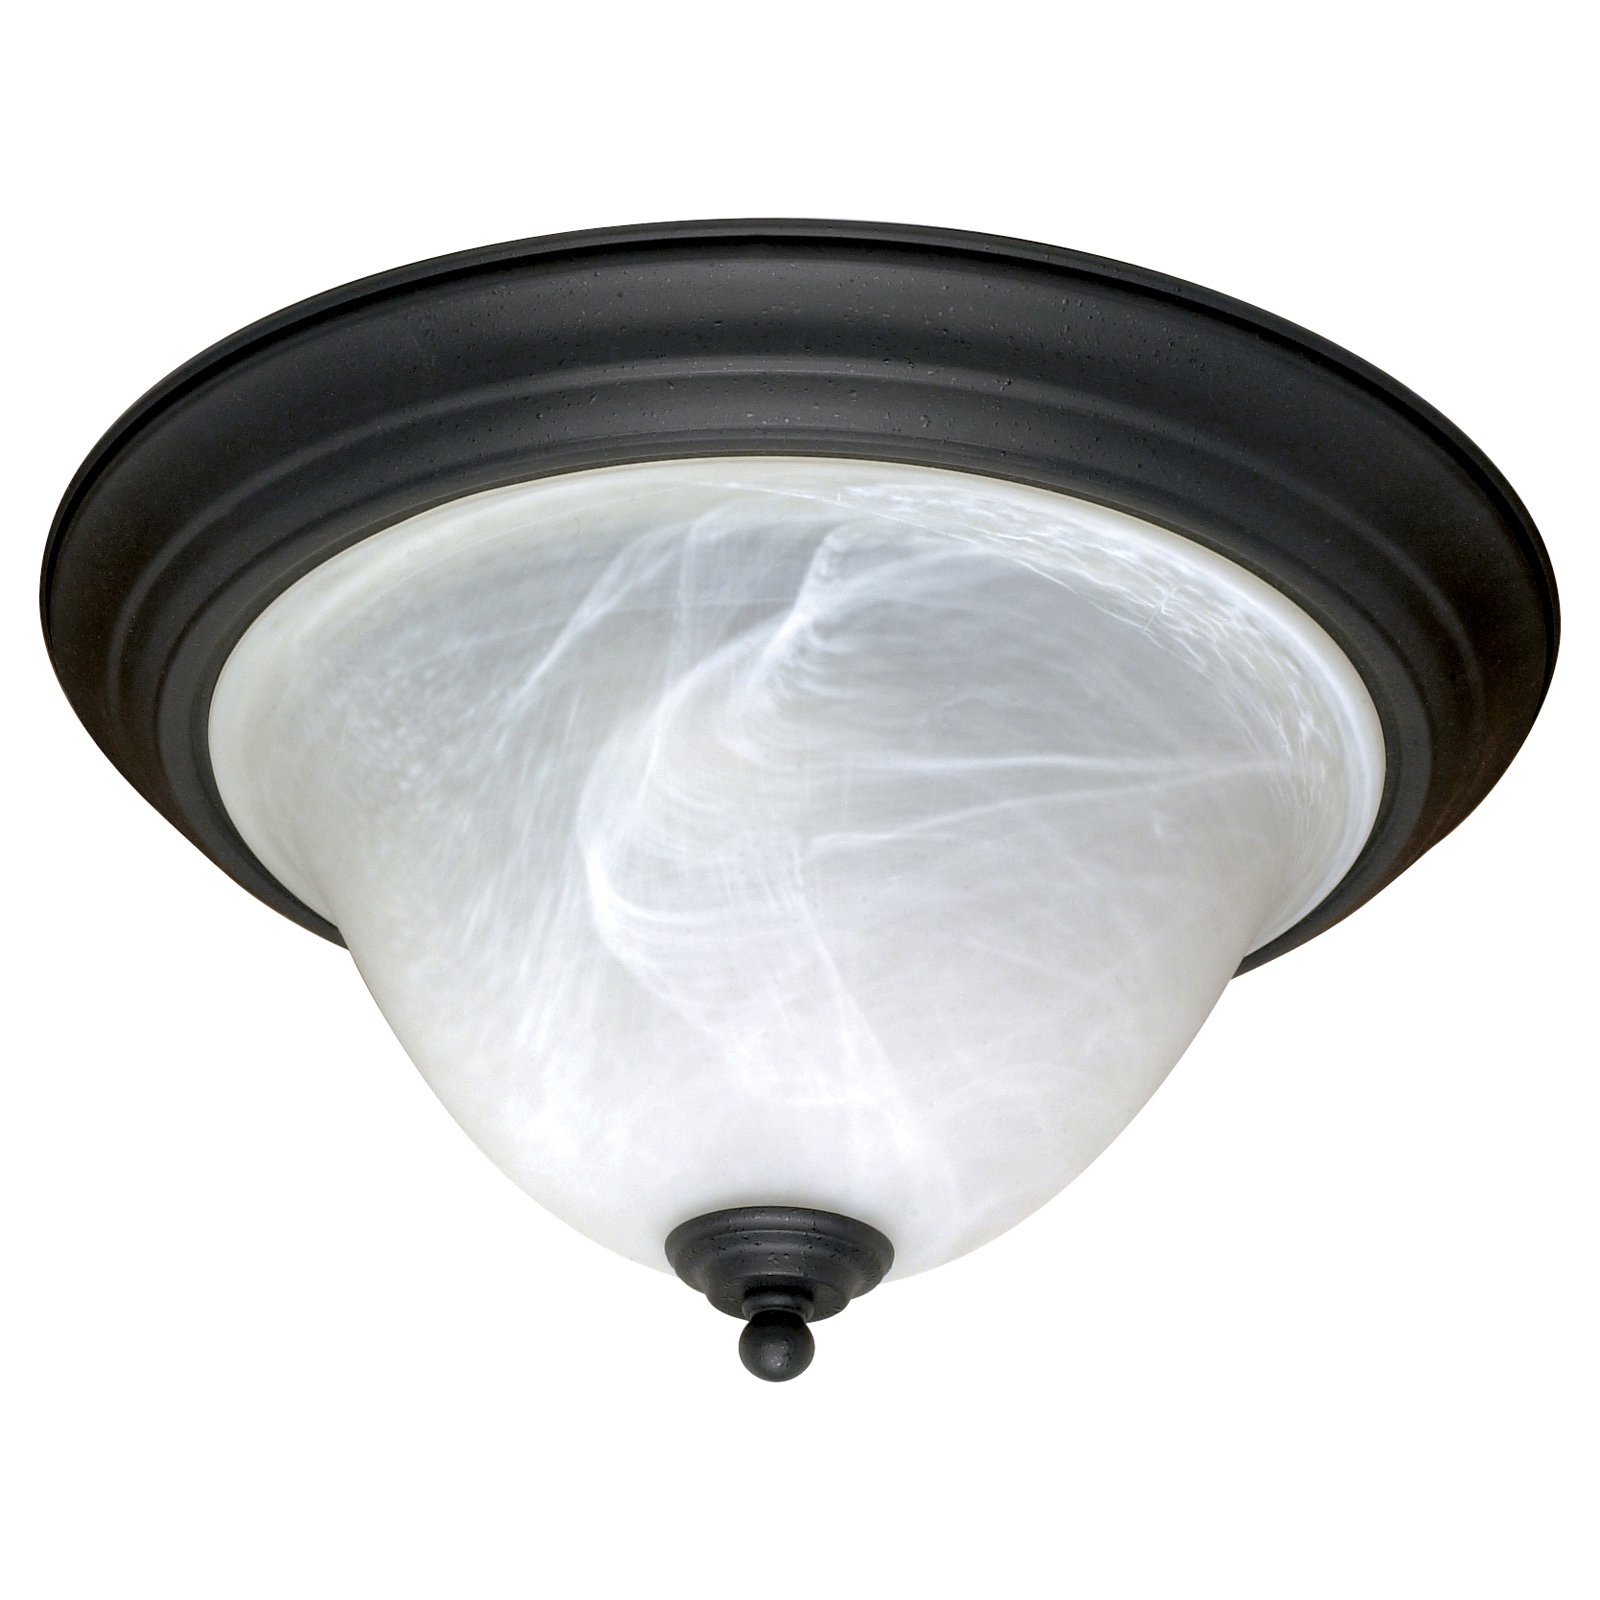 "Nuvo Lighting 60383 - 2 Light (Medium Screw Base) 15.25"" Castillo Flush Mount Textured Flat Black Finish with Alabaster Swirl Glass Ceiling Light Fixture (60-383)"